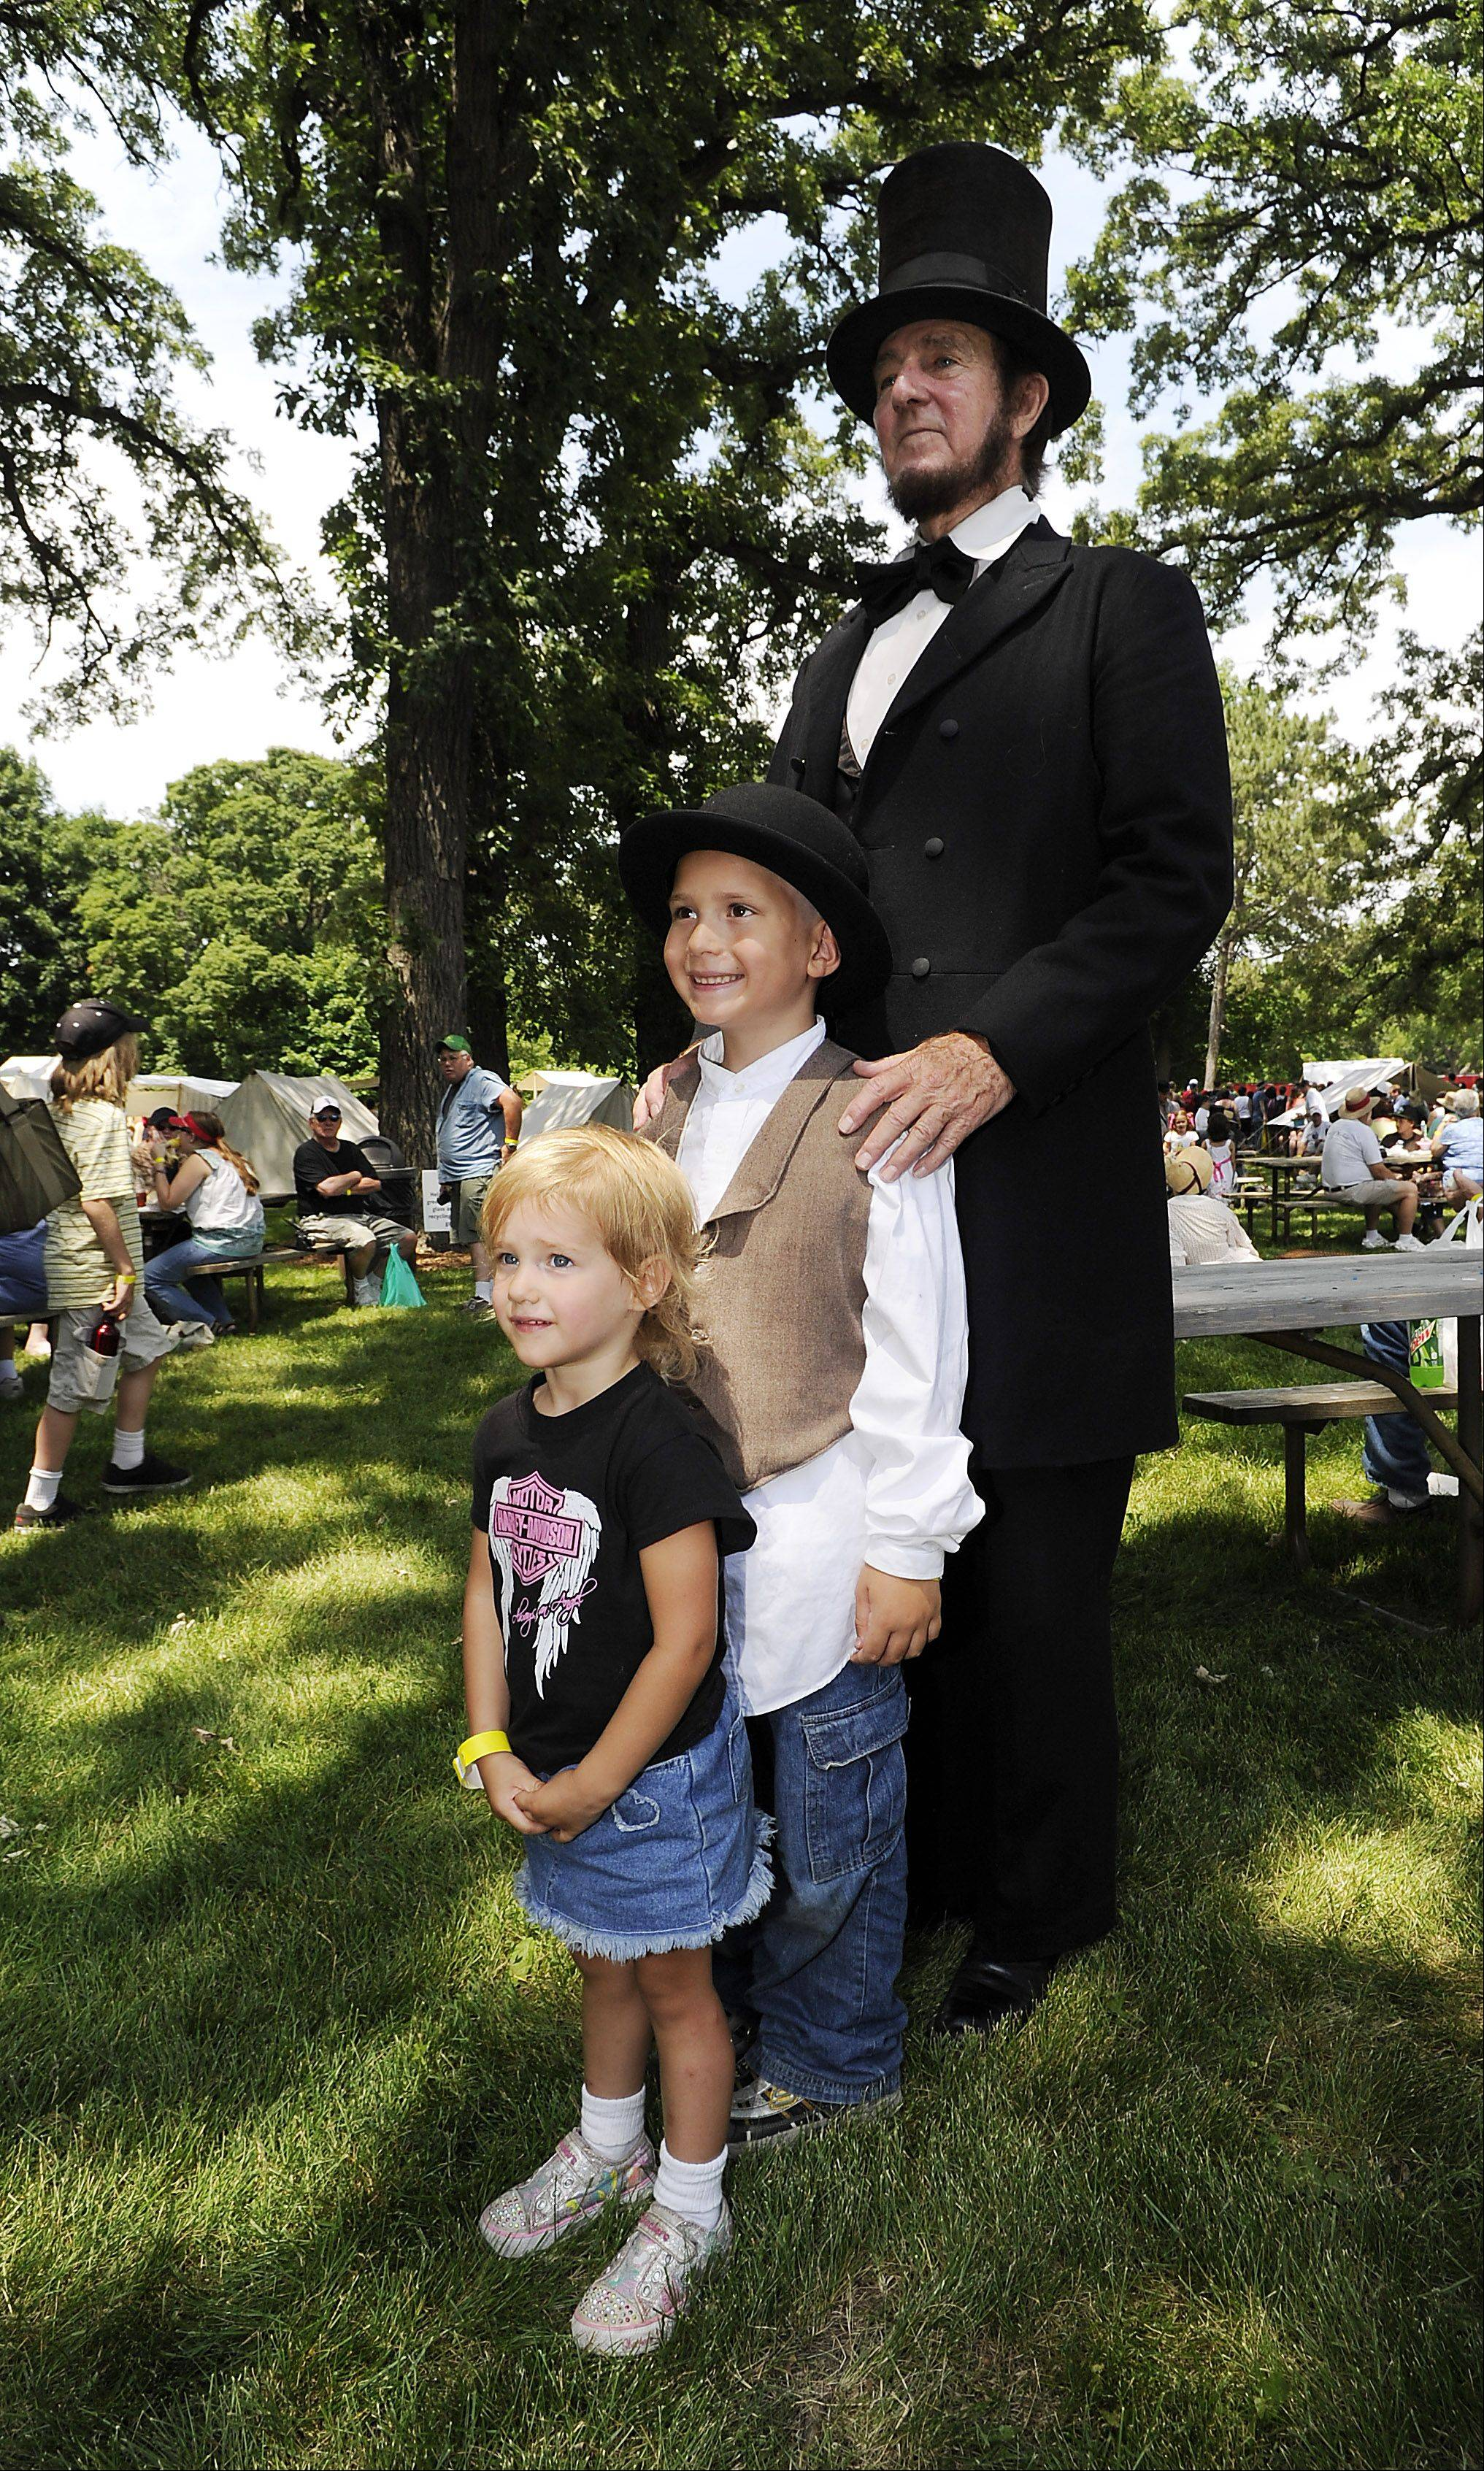 Standing tall is Max Daniels of Wheaton playing the character President Abraham Lincoln against some of his future voters Bailee Lizzo,3, of Third Lake and Wyatt Johnson,7, of Third Lake at the 20th annual Civil War days in the Lake County Forest Preserve on Saturday.